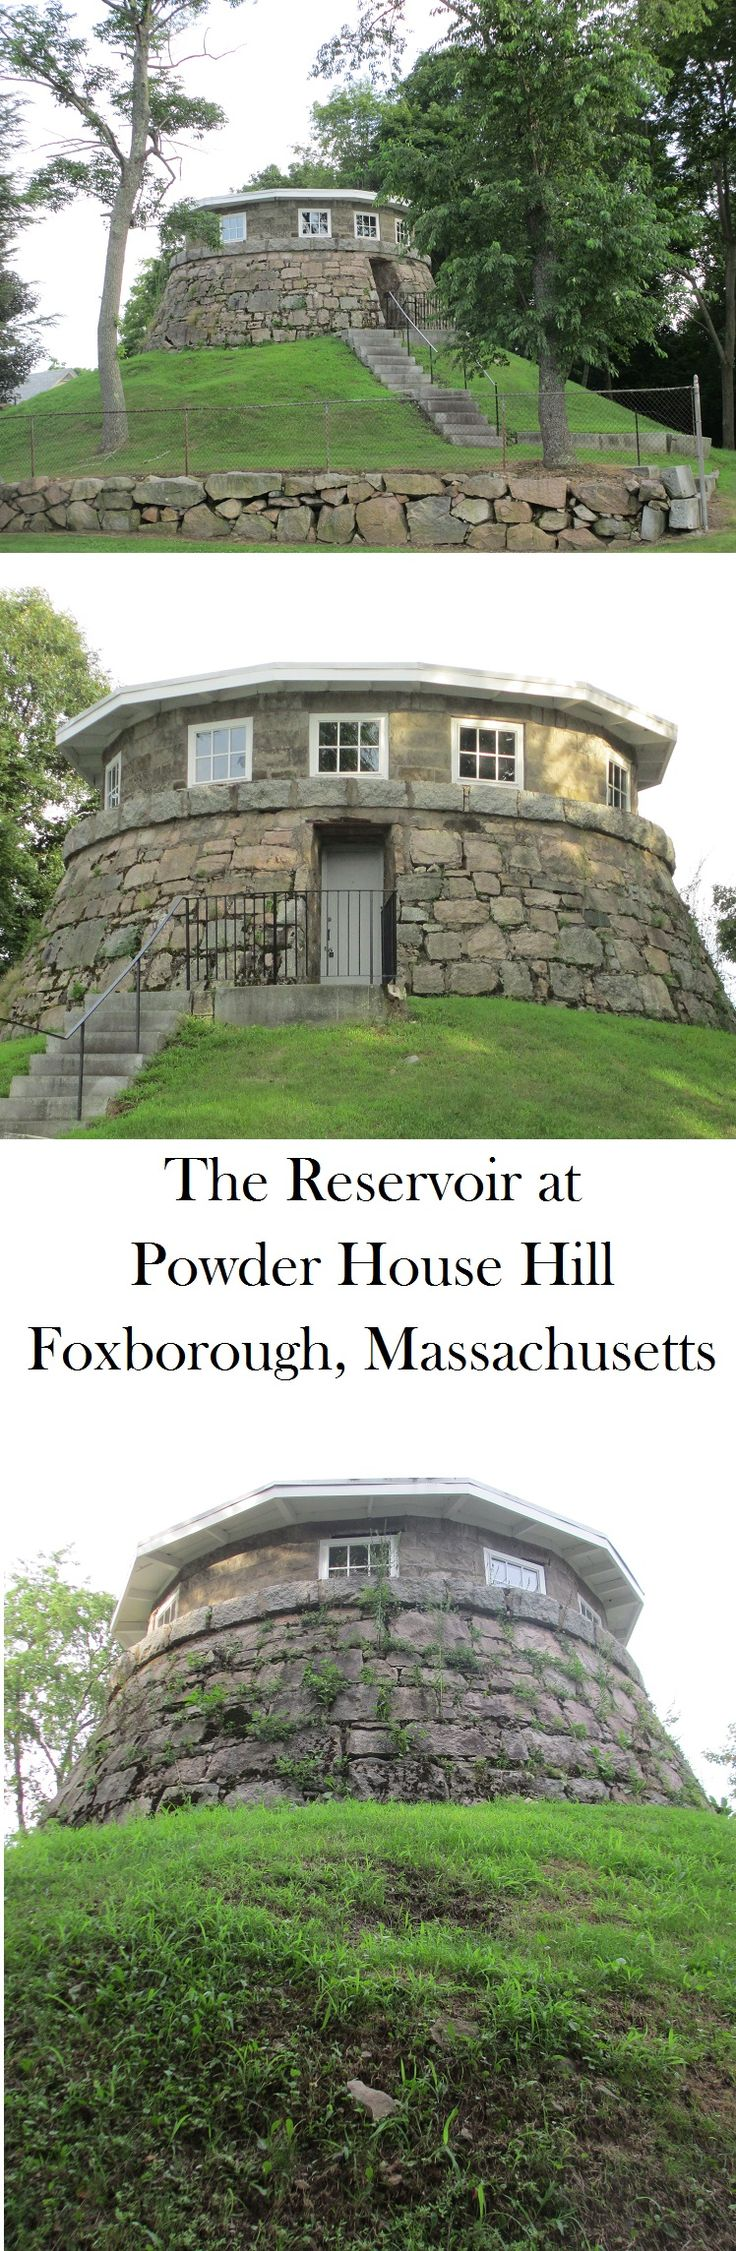 The Reservoir at Powder House Hill in Foxborough, Massachusetts. July, 2013.